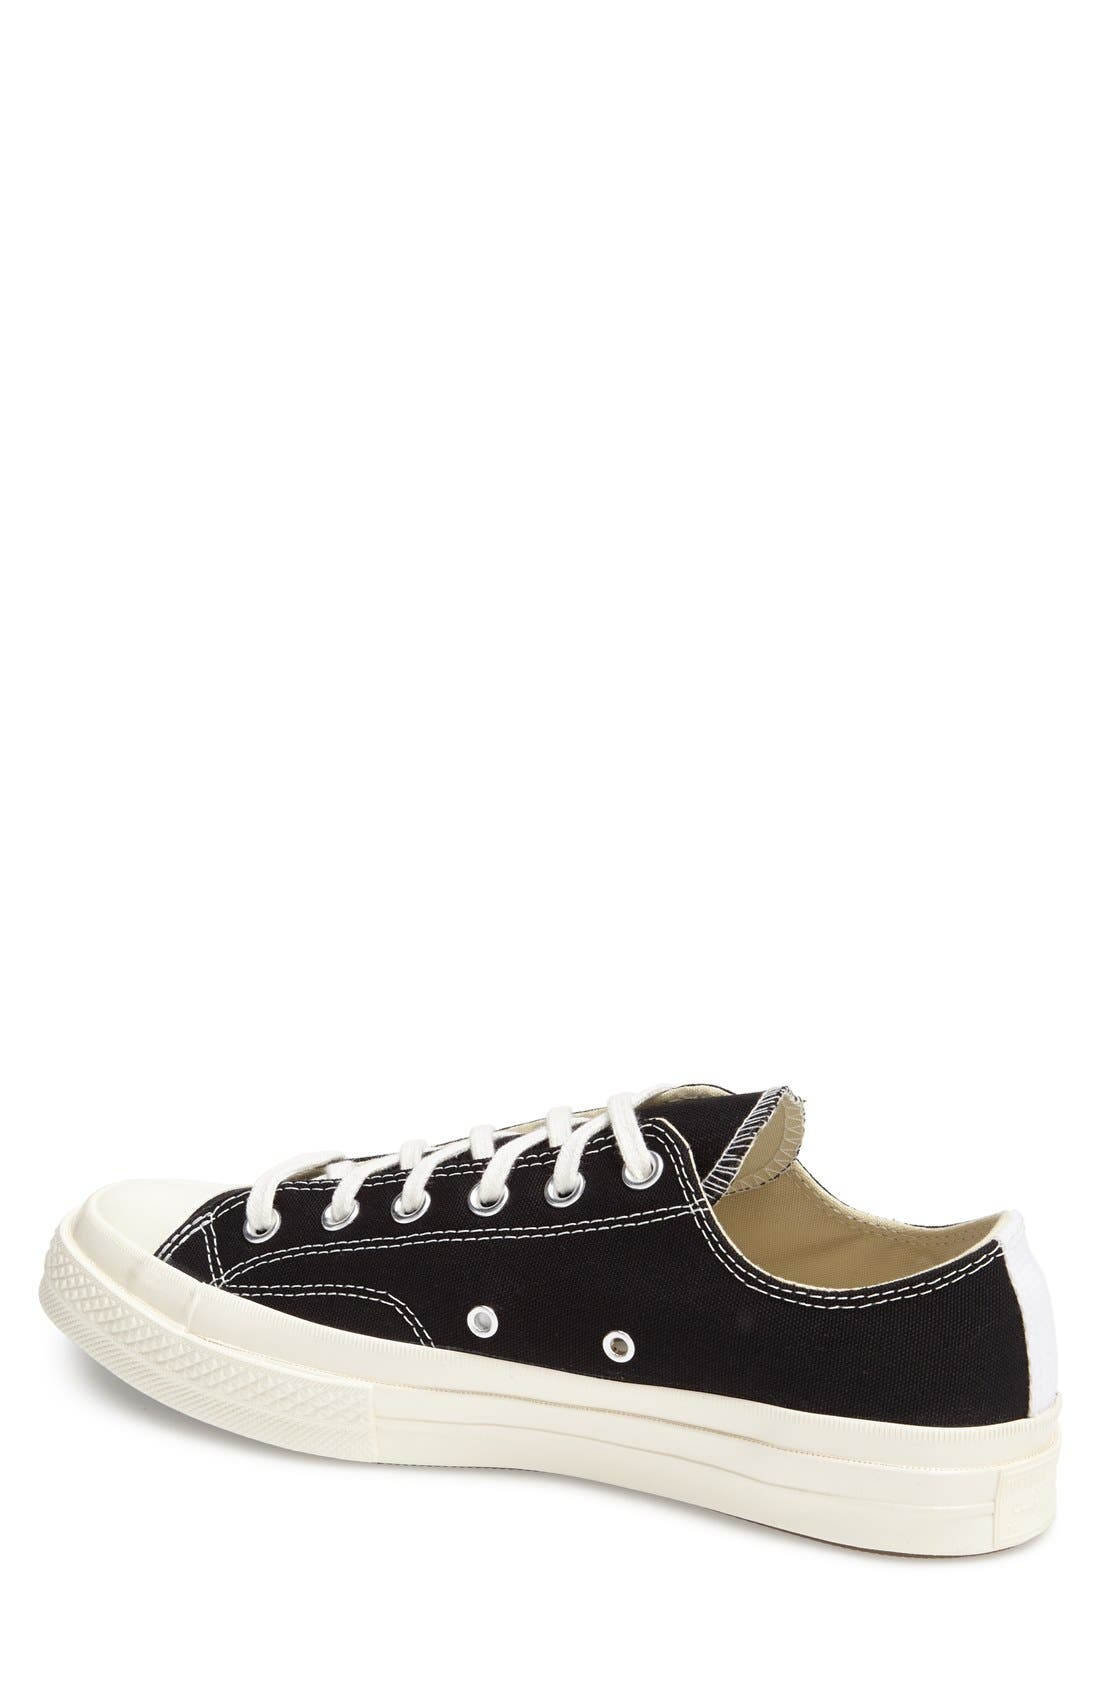 COMME DES GARÇONS, PLAY x Converse Chuck Taylor<sup>®</sup> Low Top Sneaker, Alternate thumbnail 3, color, BLACK CANVAS